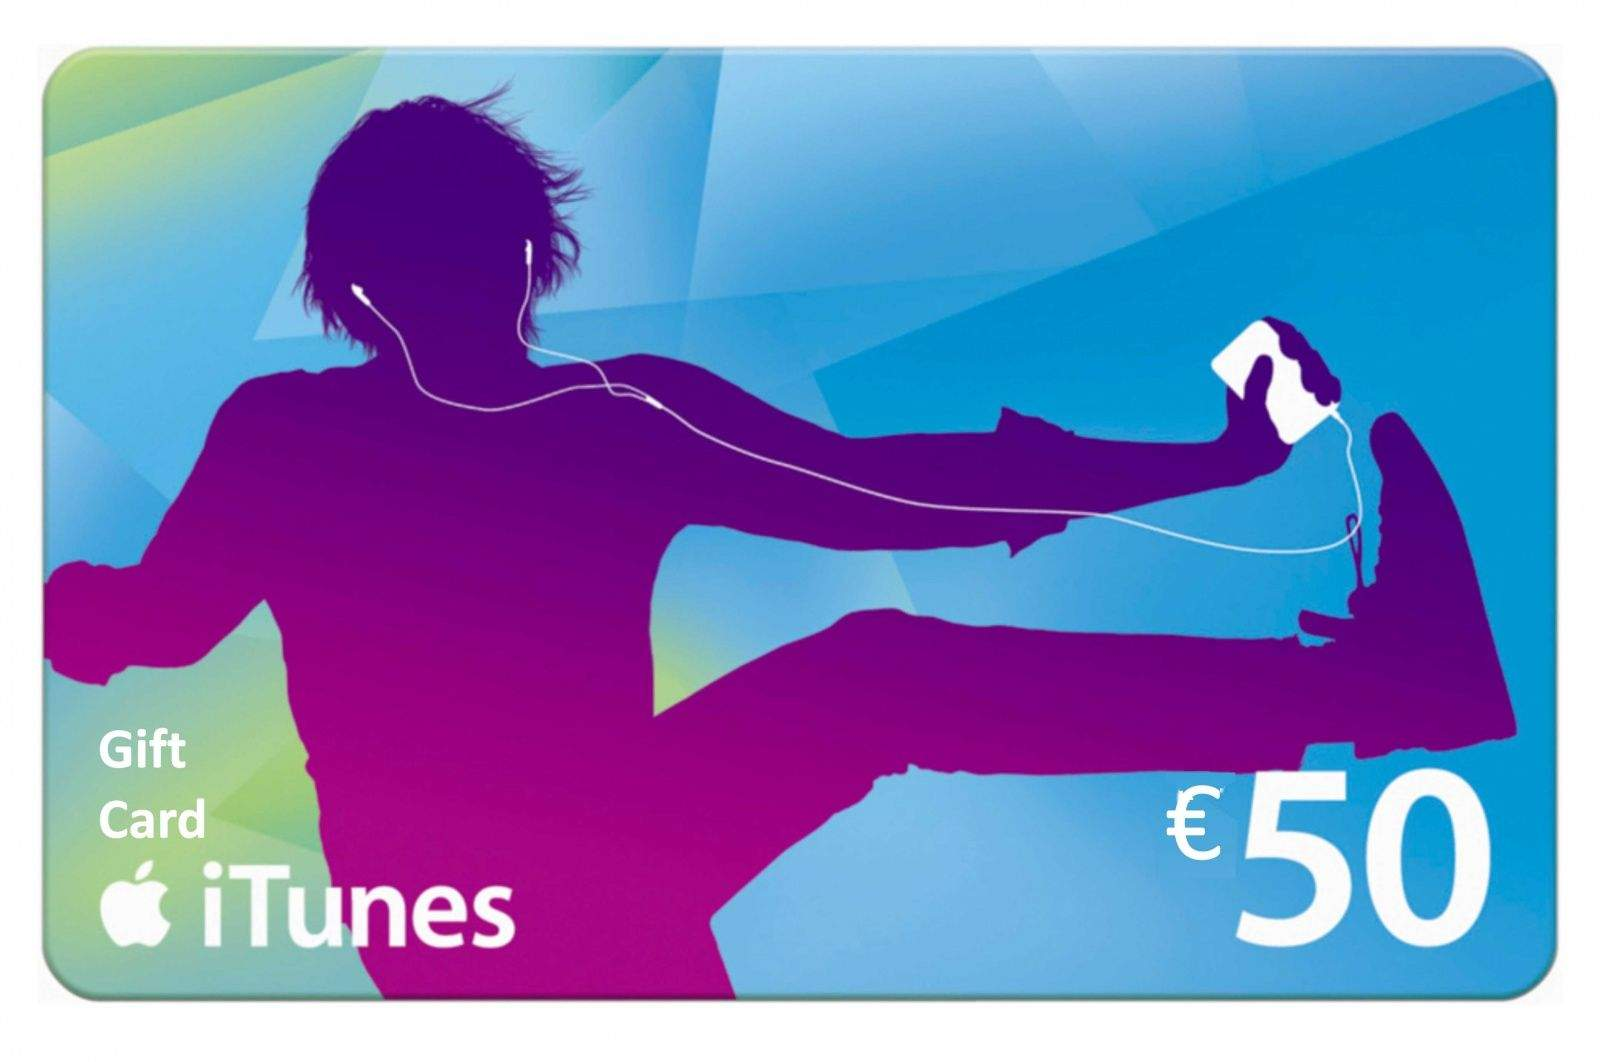 Target Is Giving Away Free ITunes Money With Purchase Of Apple Products Deals